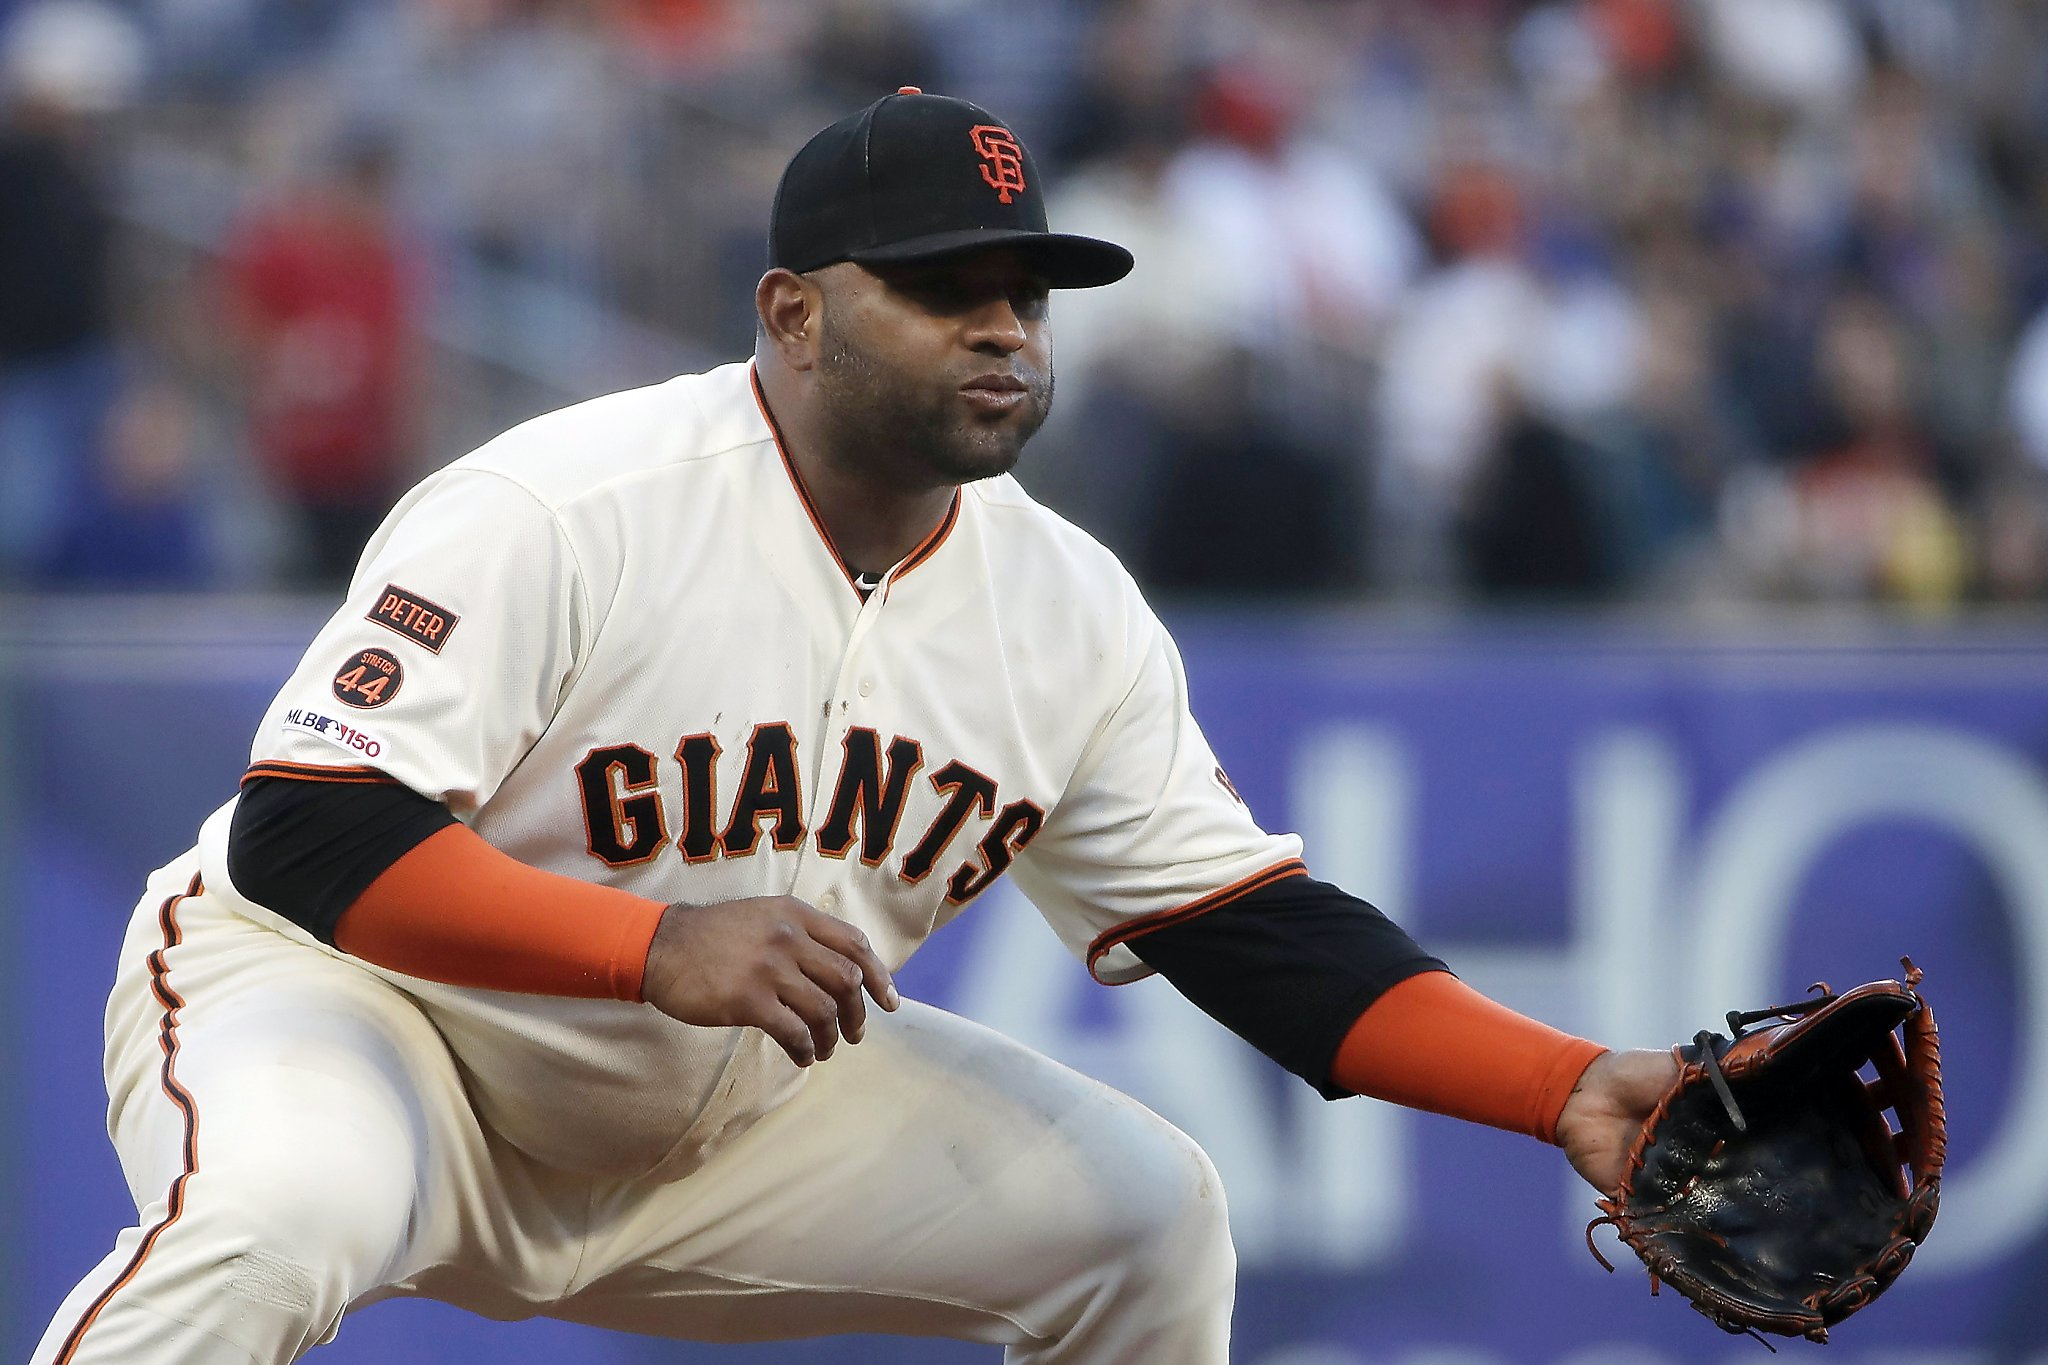 Pablo Sandoval on Giants return: 'I didn't want to make the same mistake'